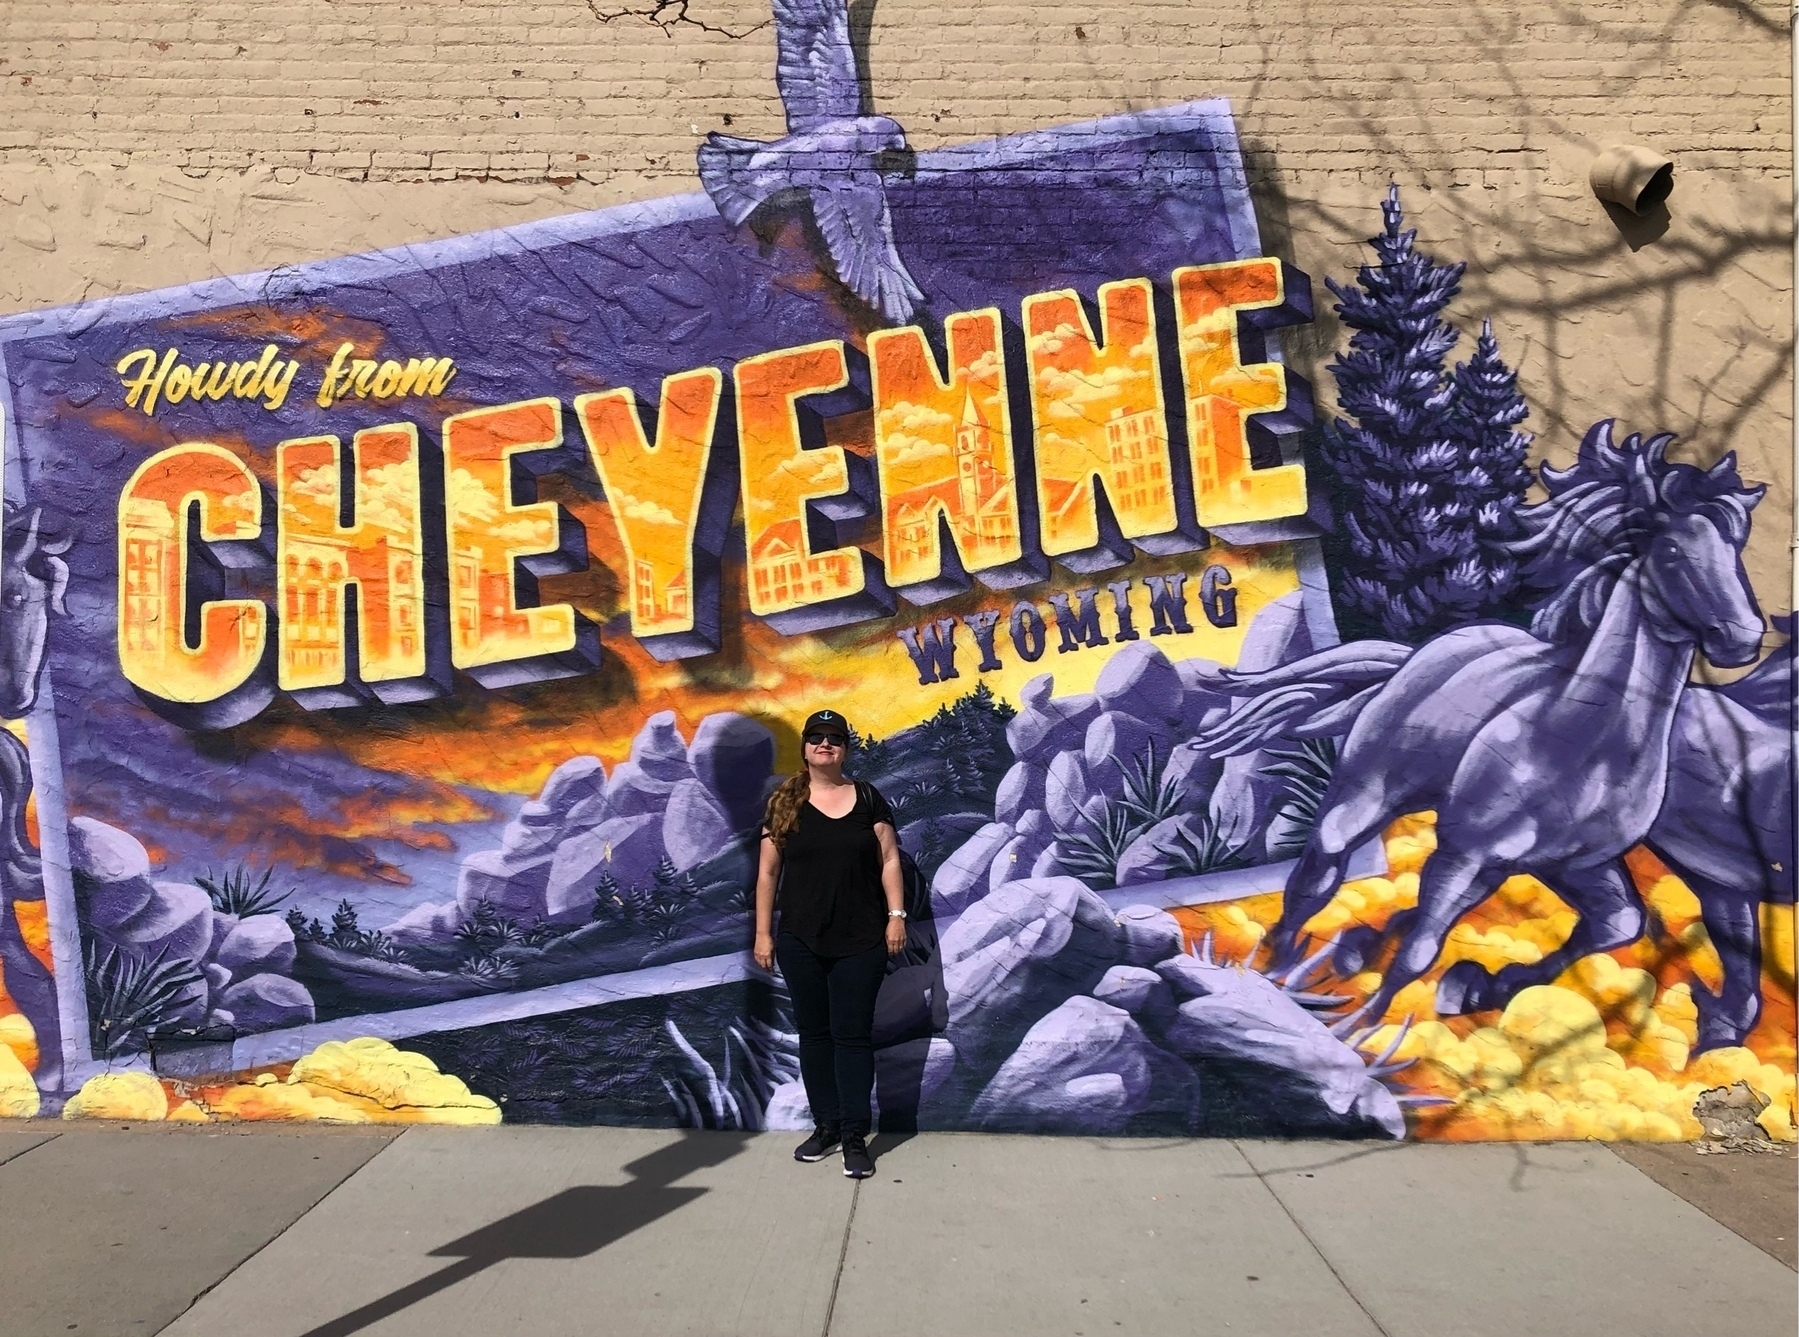 Cheri stands in front of a Welcome to Cheyenne mural painted like a postcard. Purple with wild horses.